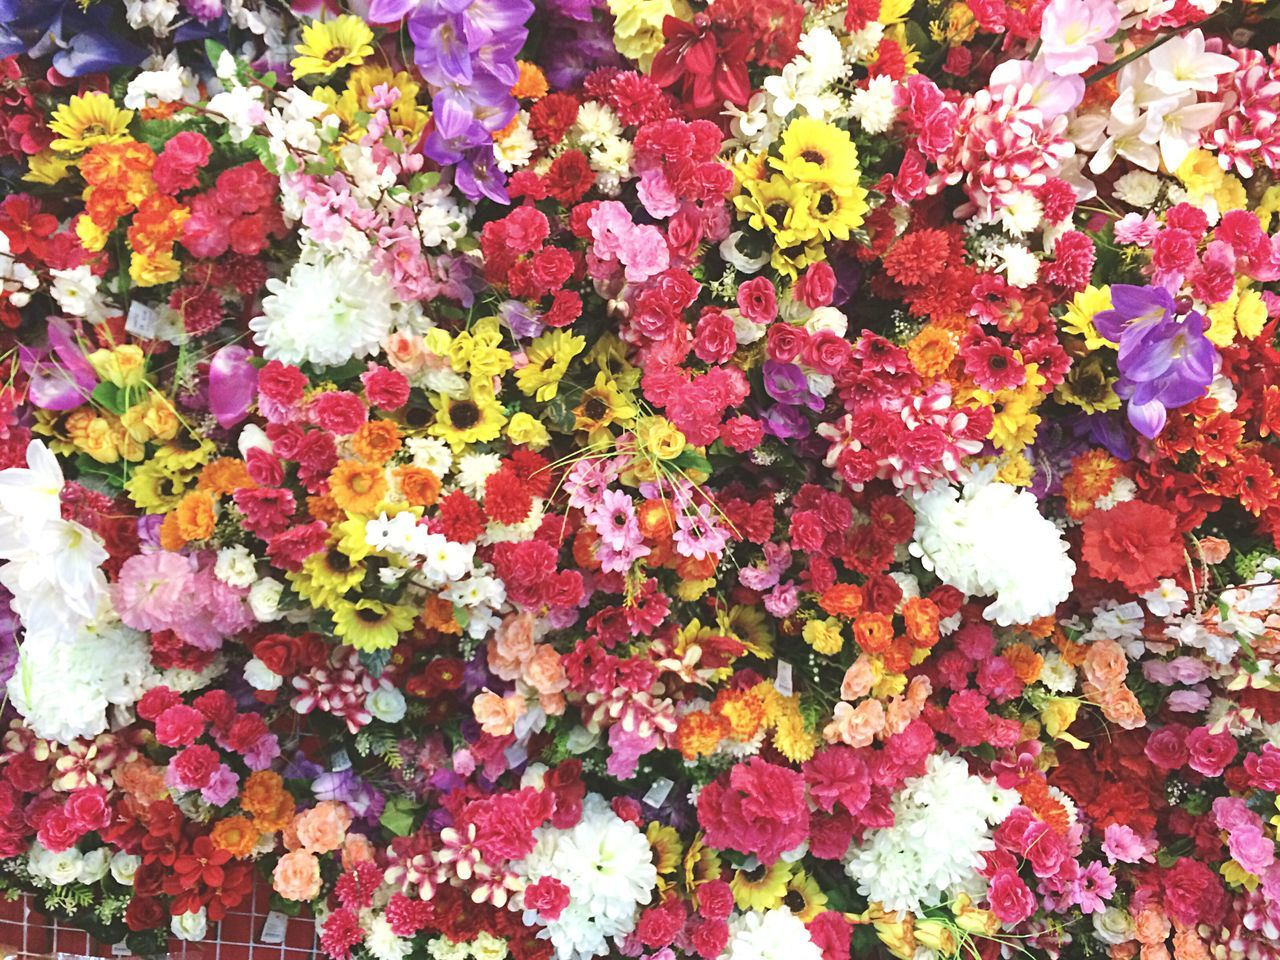 flower, fragility, variation, leaf, freshness, nature, multi colored, backgrounds, no people, abundance, growth, yellow, petal, beauty in nature, flower market, full frame, outdoors, close-up, day, blooming, flower head